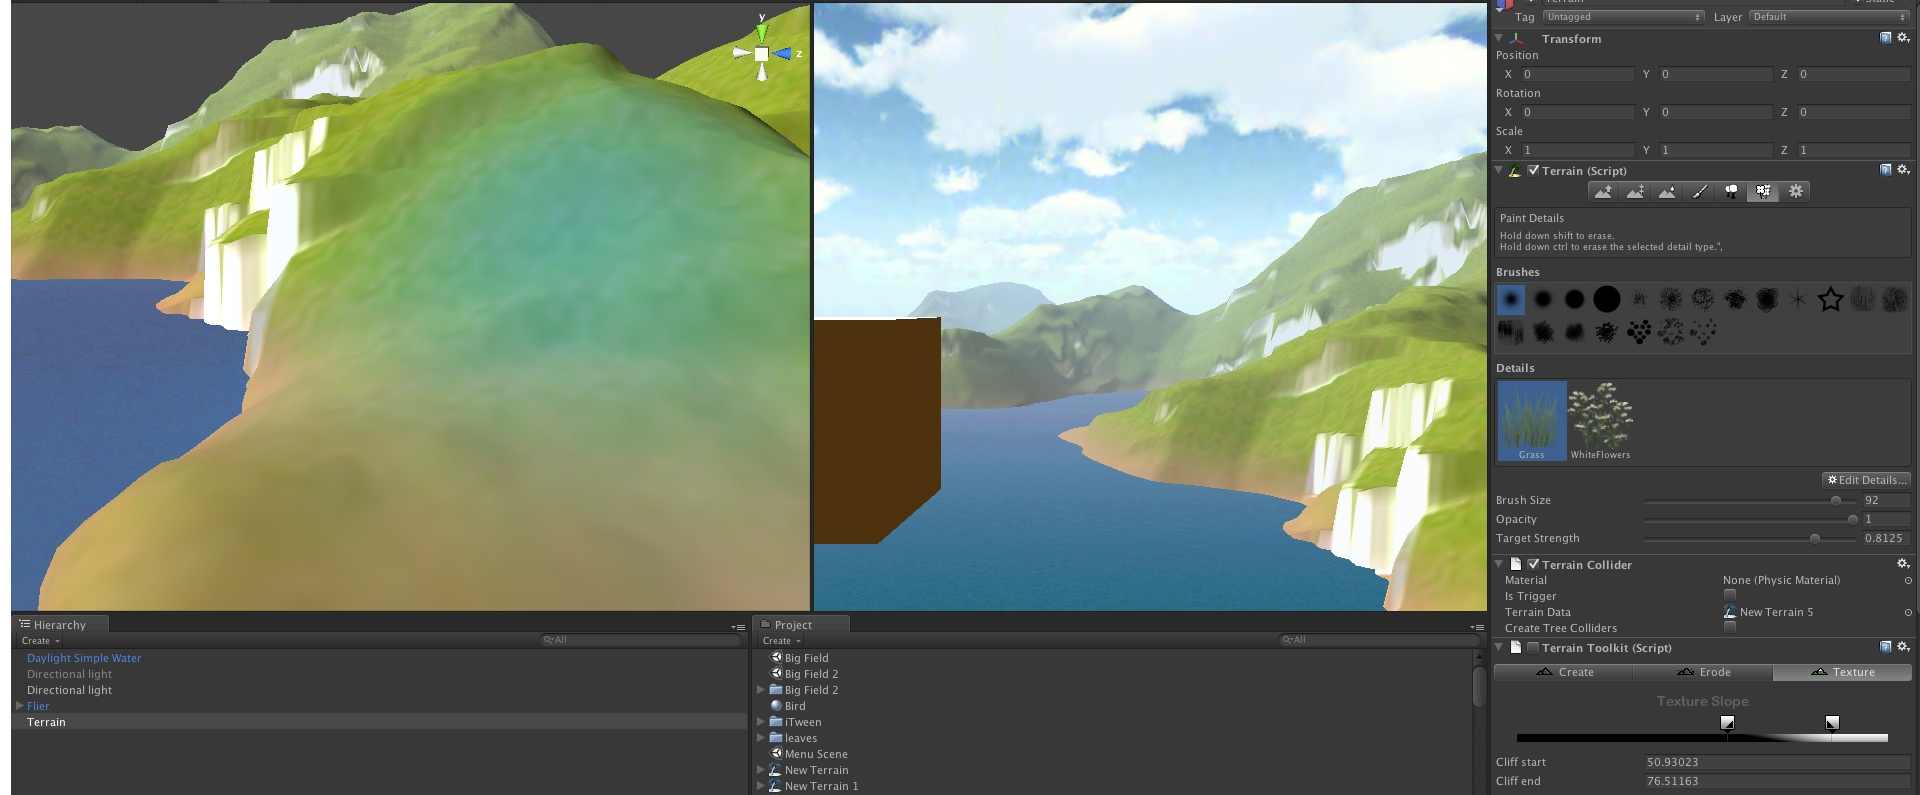 Grass settings in the Editor. Note that the entire terrain has previously been coated in grass but it now shows in neither scene view nor game view.